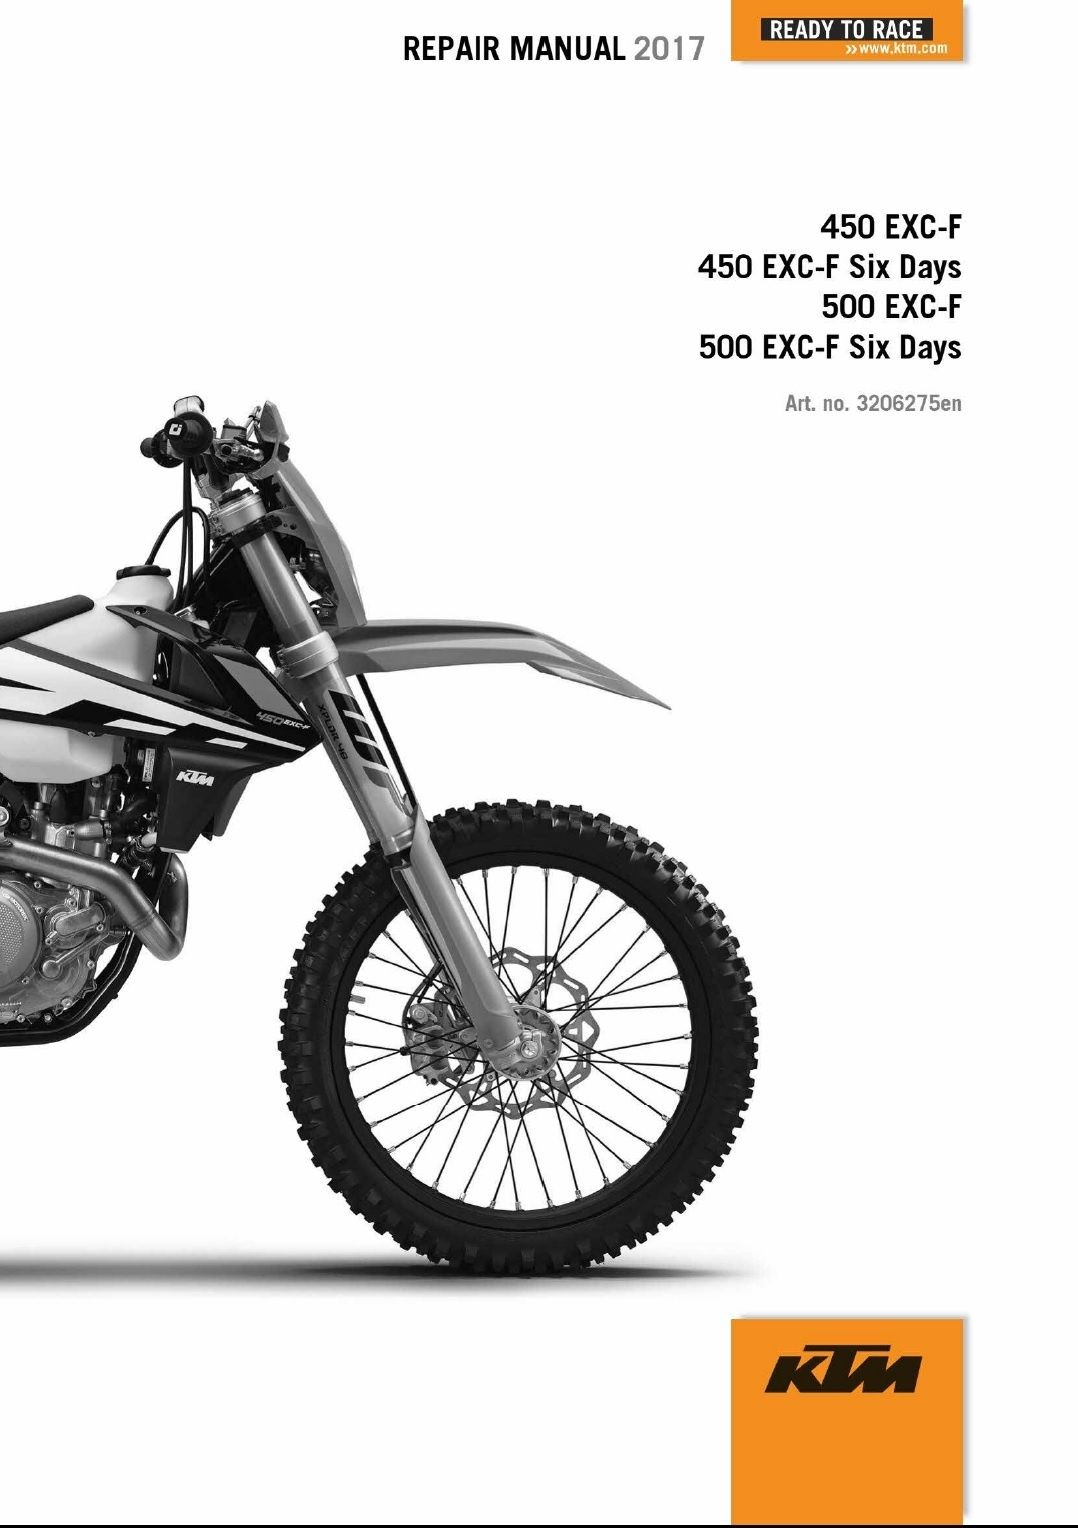 2017 KTM 450-500 EXC-F XCF-W Six Days SERVICE REPAIR MANUAL